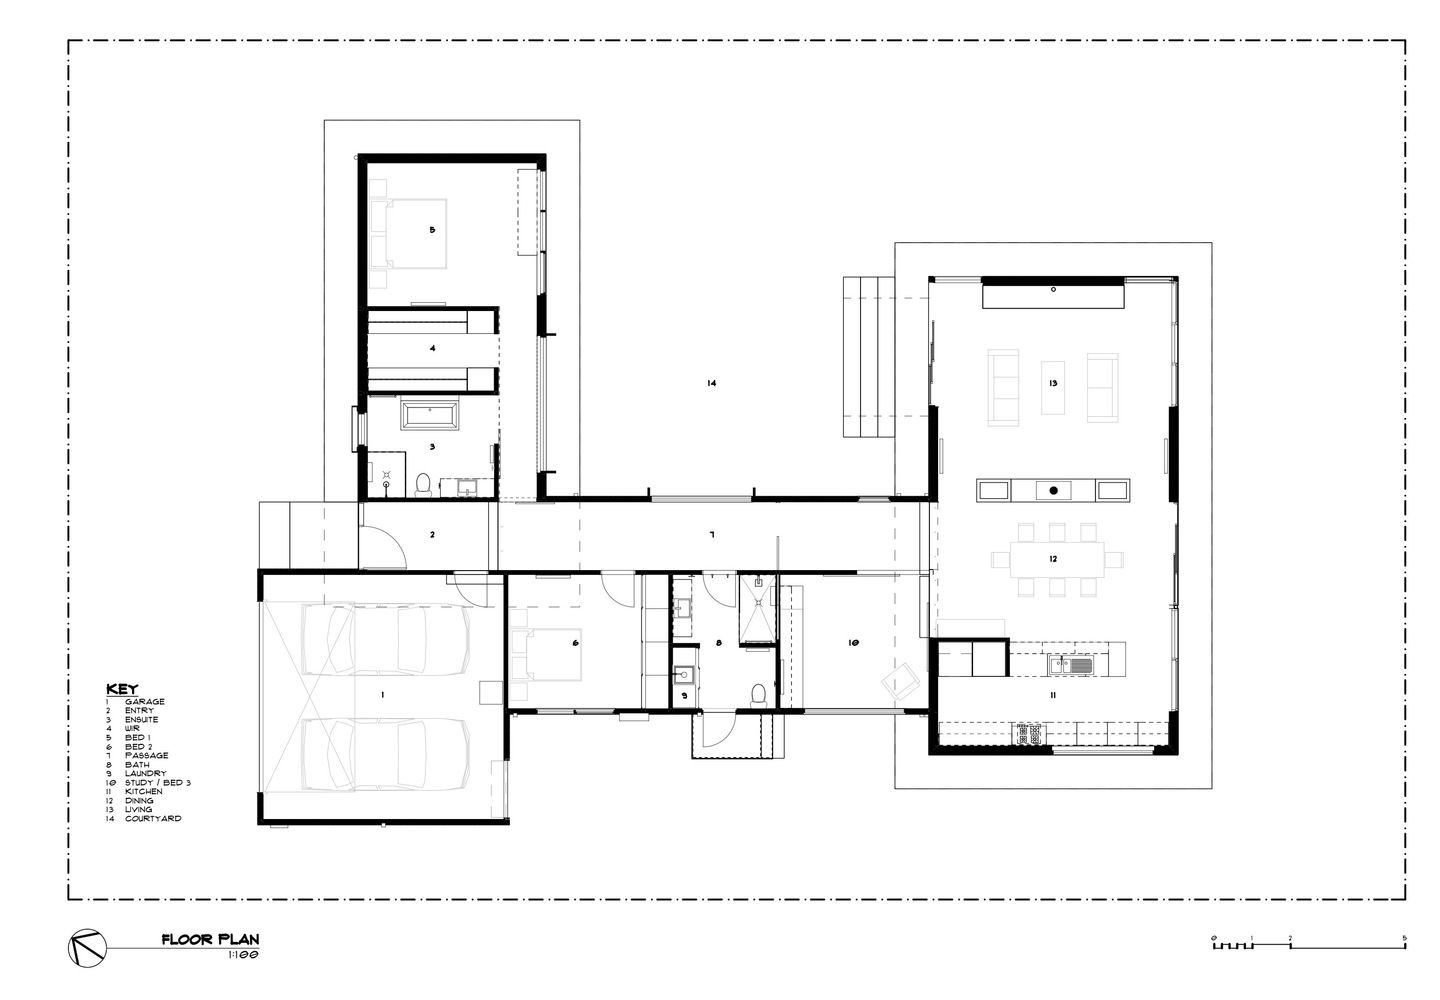 Gallery Of Golf Course House Bespoke Architects 38 Architectural Floor Plans Cool House Designs Mid Century Modern House Plans